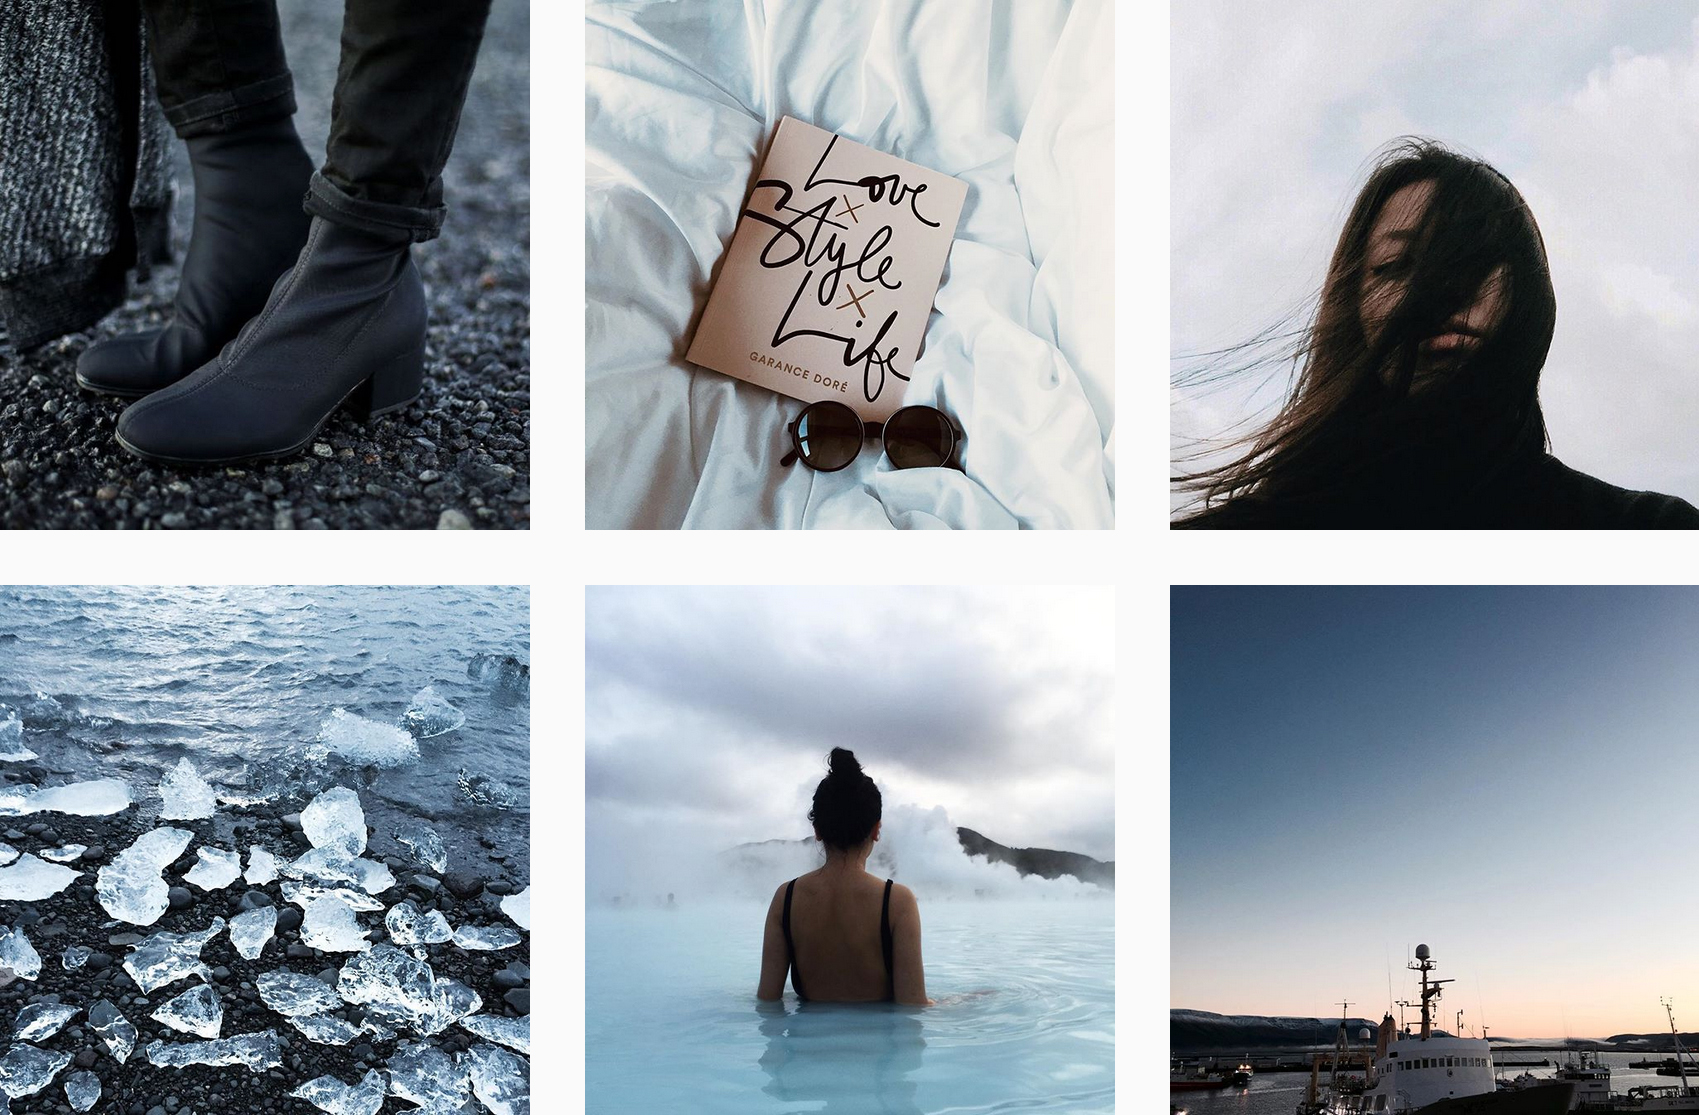 IHEARTALICE – Fashion, Lifestyle & Travel-Blog by Alice M. Huynh from Berlin/Germany: Instagram Travel-Diary Iceland: Blue Lagoon Geothermal Bath Hot Spring, Jokusarlon, Reynisfjara Black Sand Beach in Vìk, Pingvellir National Park